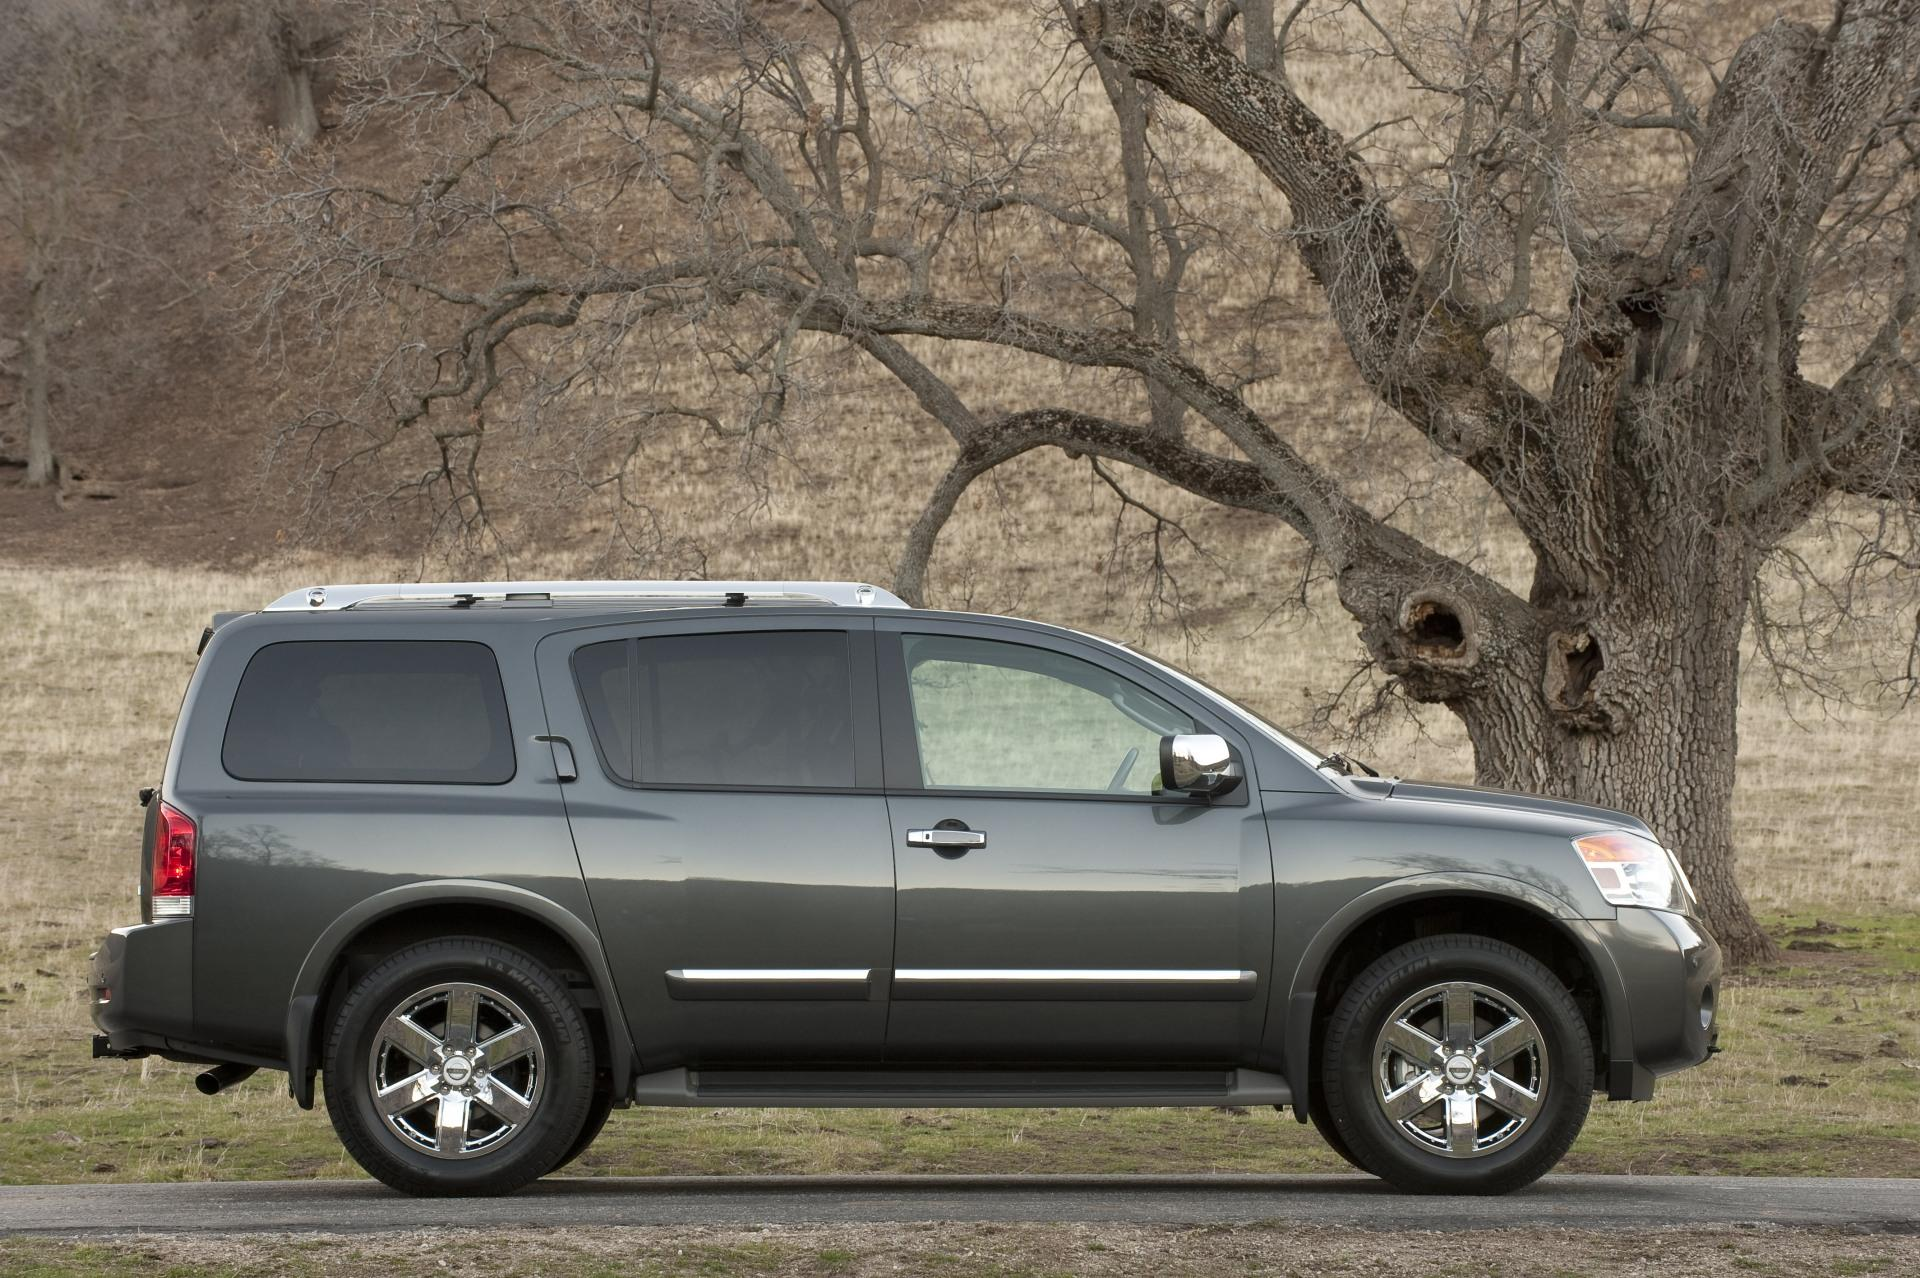 2011 Nissan Armada News and Information